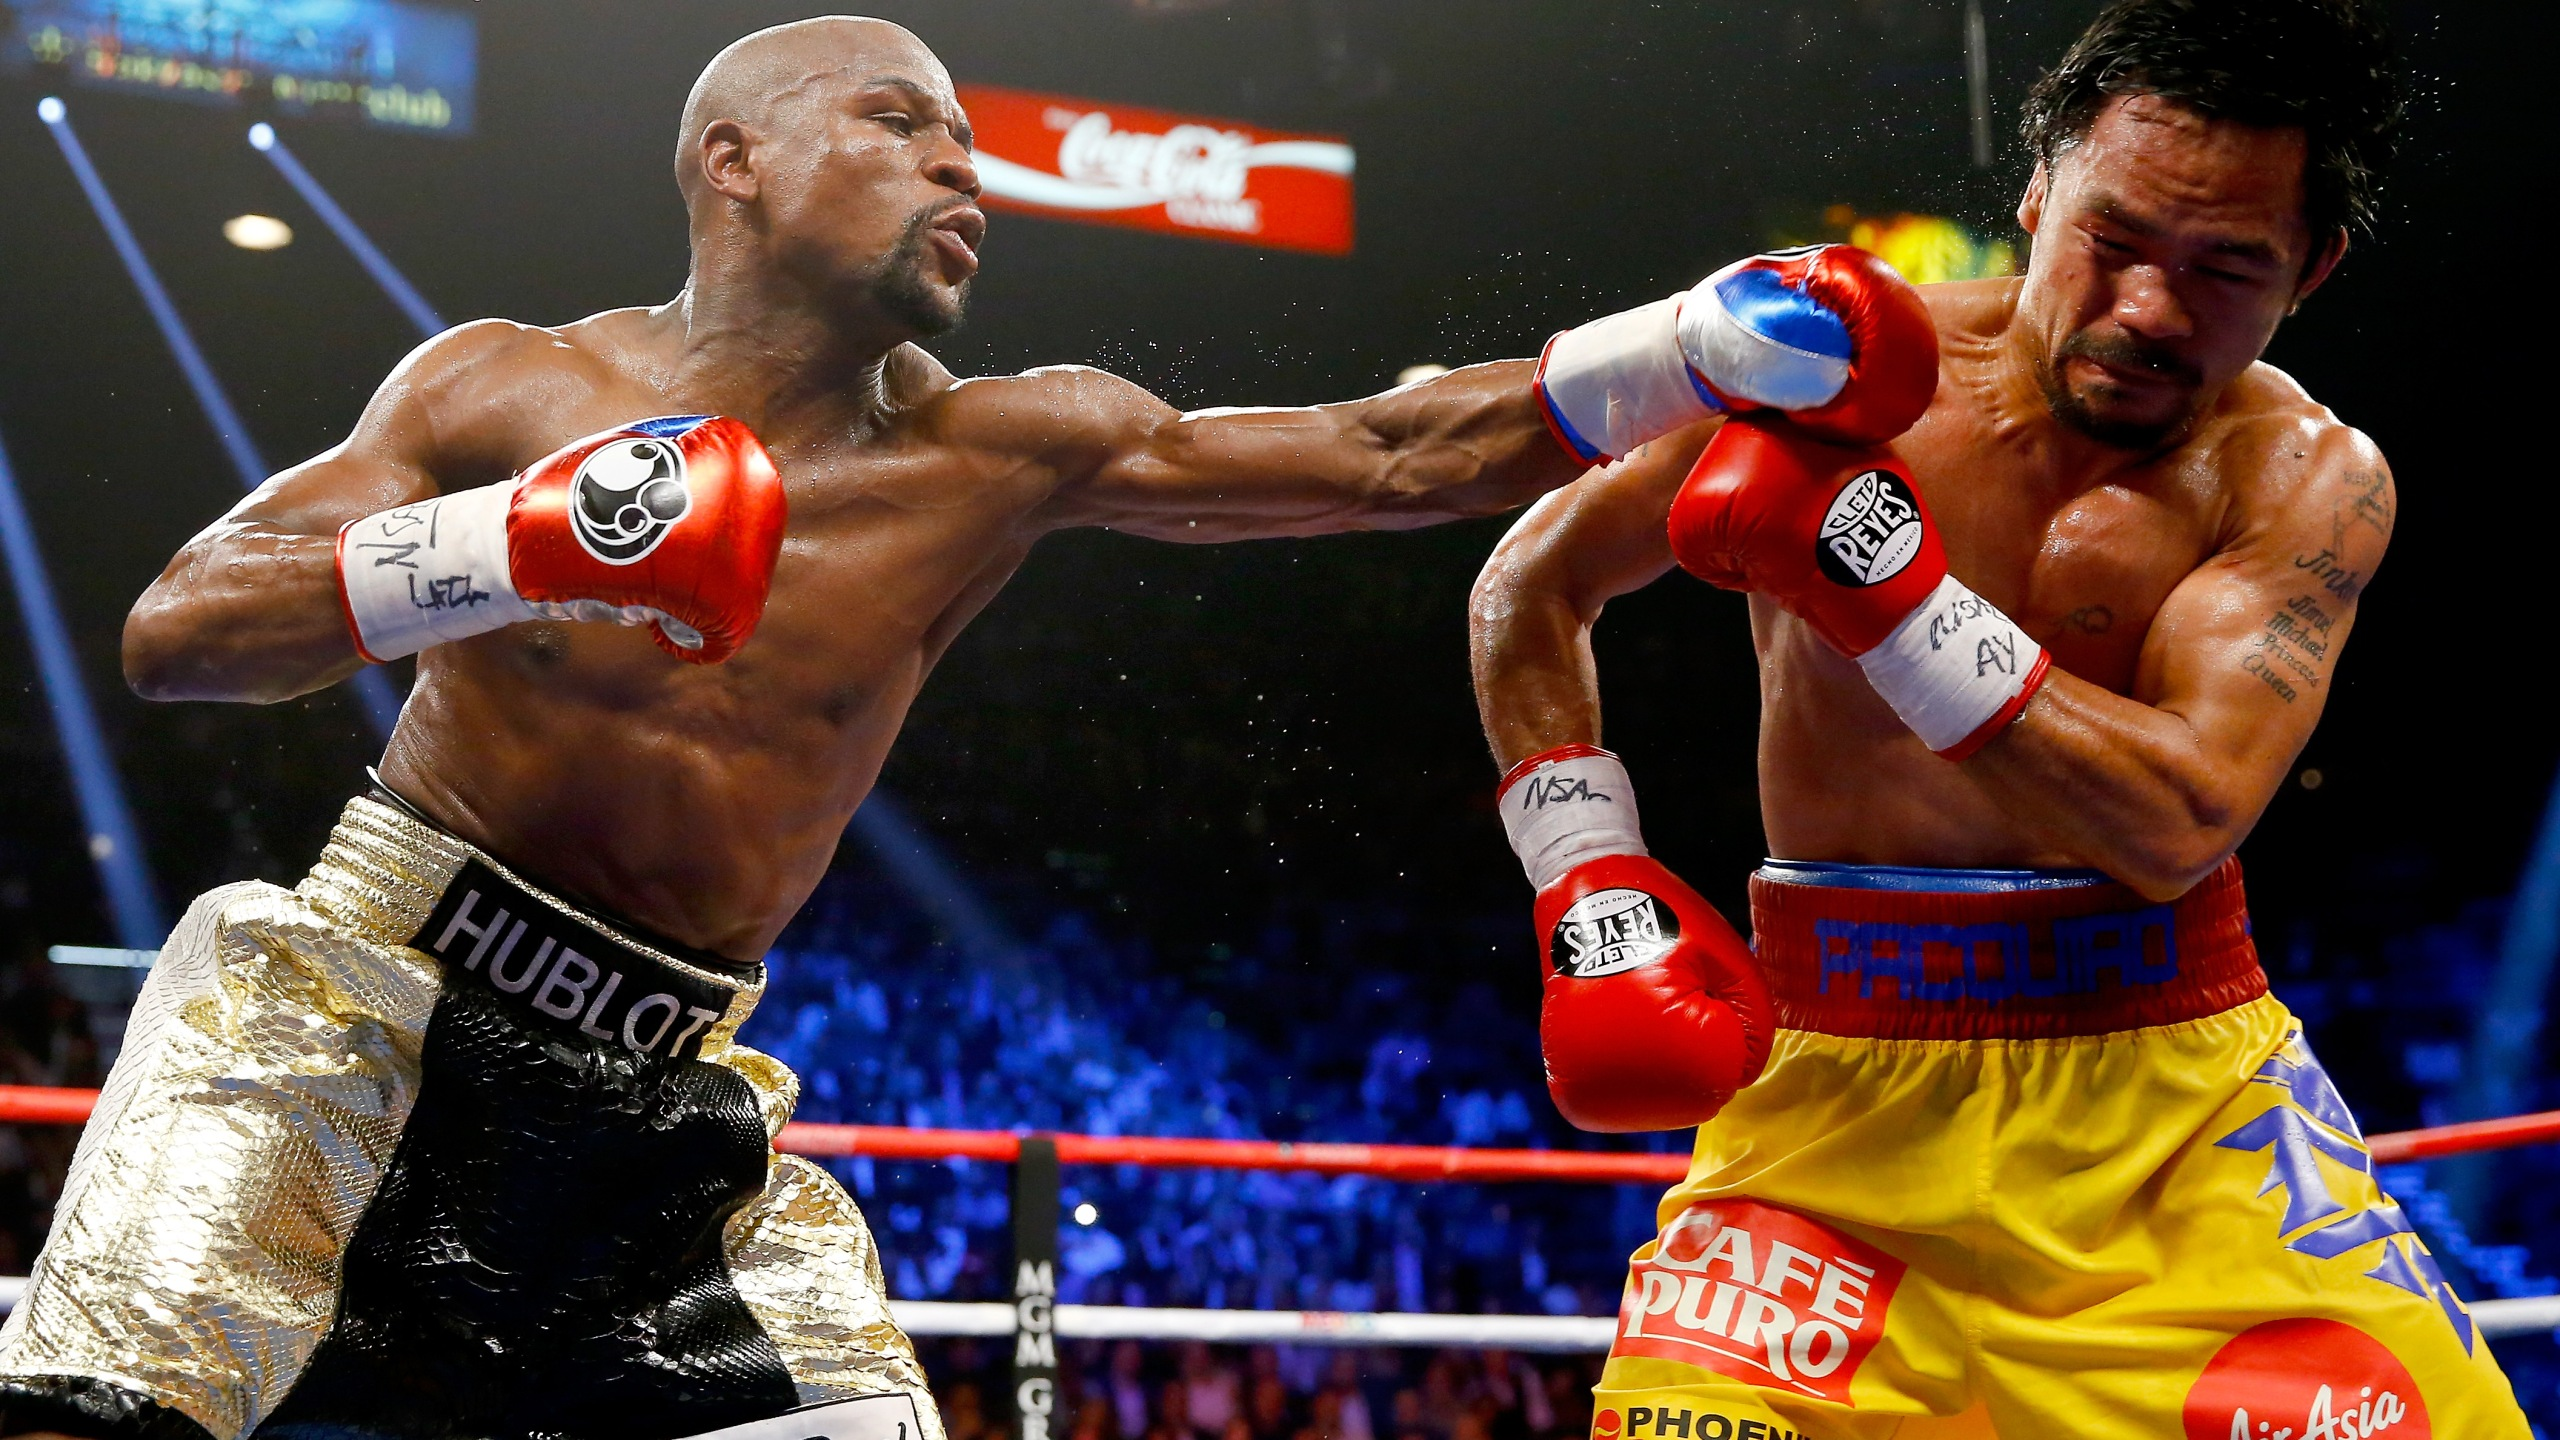 Floyd Mayweather Jr. throws a left at Manny Pacquiao during their welterweight unification championship bout on May 2, 2015 at MGM Grand Garden Arena in Las Vegas, Nevada. (Credit: Al Bello/Getty Images)